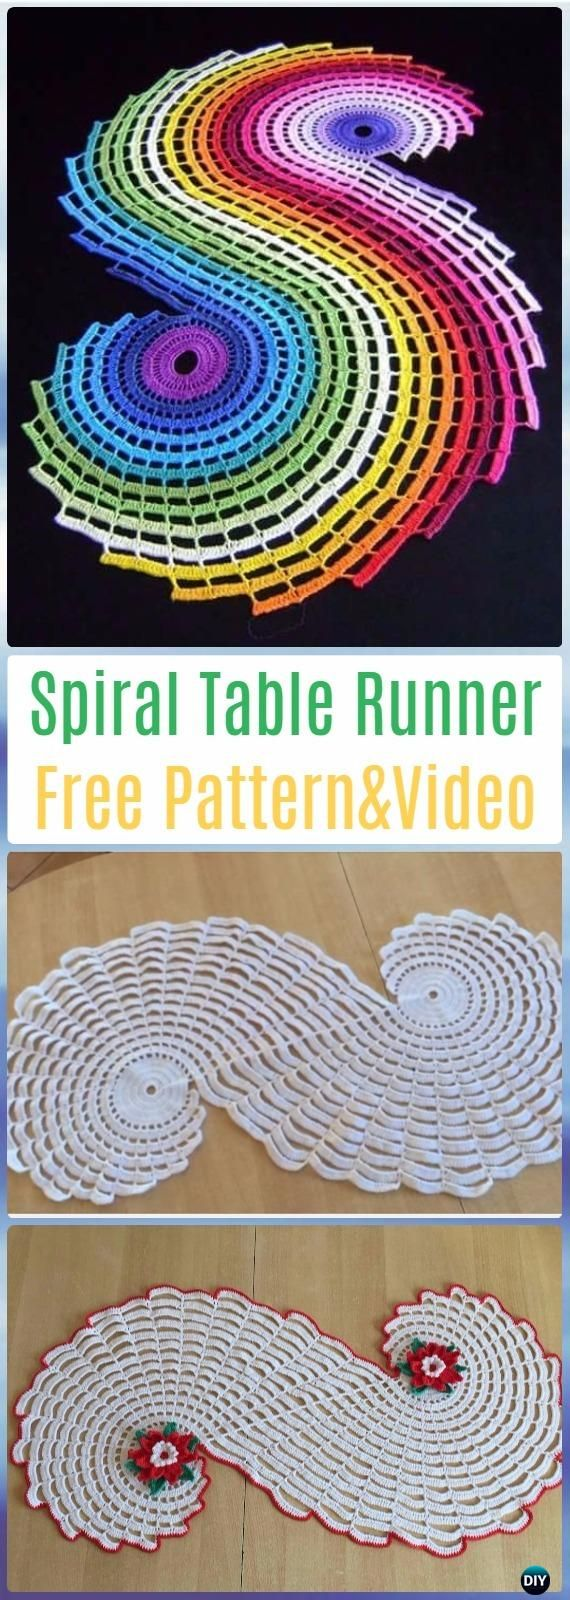 Crochet table runner free patterns tutorials crochet patterns crochet spiral table runner free pattern video crochet table runner free patterns bankloansurffo Images